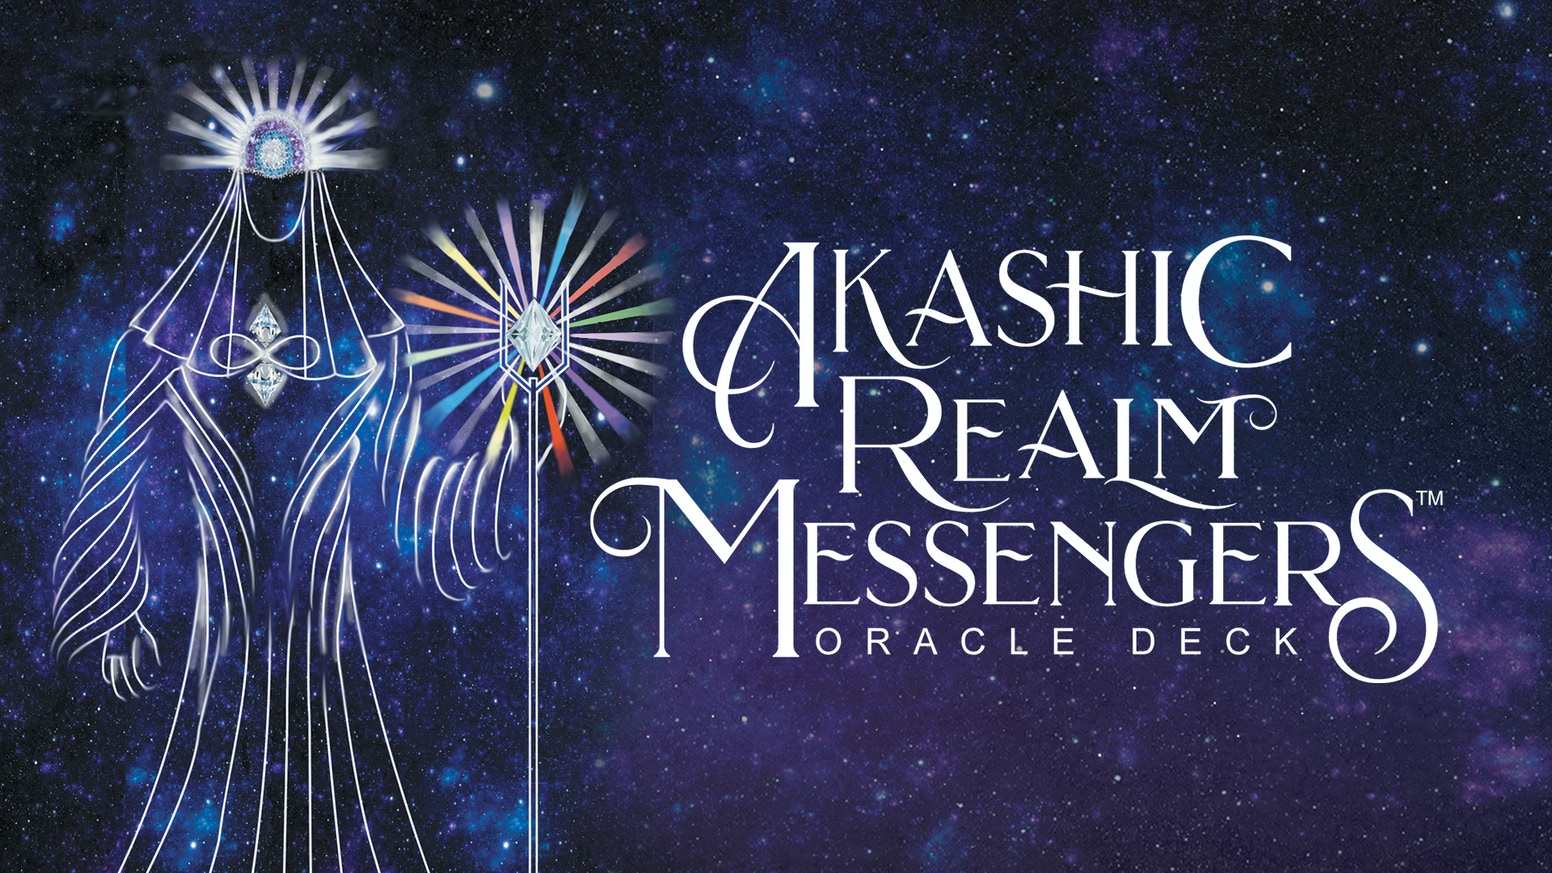 Messengers From The Akashic Realm Bring You Guidance In This Unique 44 Card Oracle Deck + Bilingual Guidebook.(English and Portuguese)